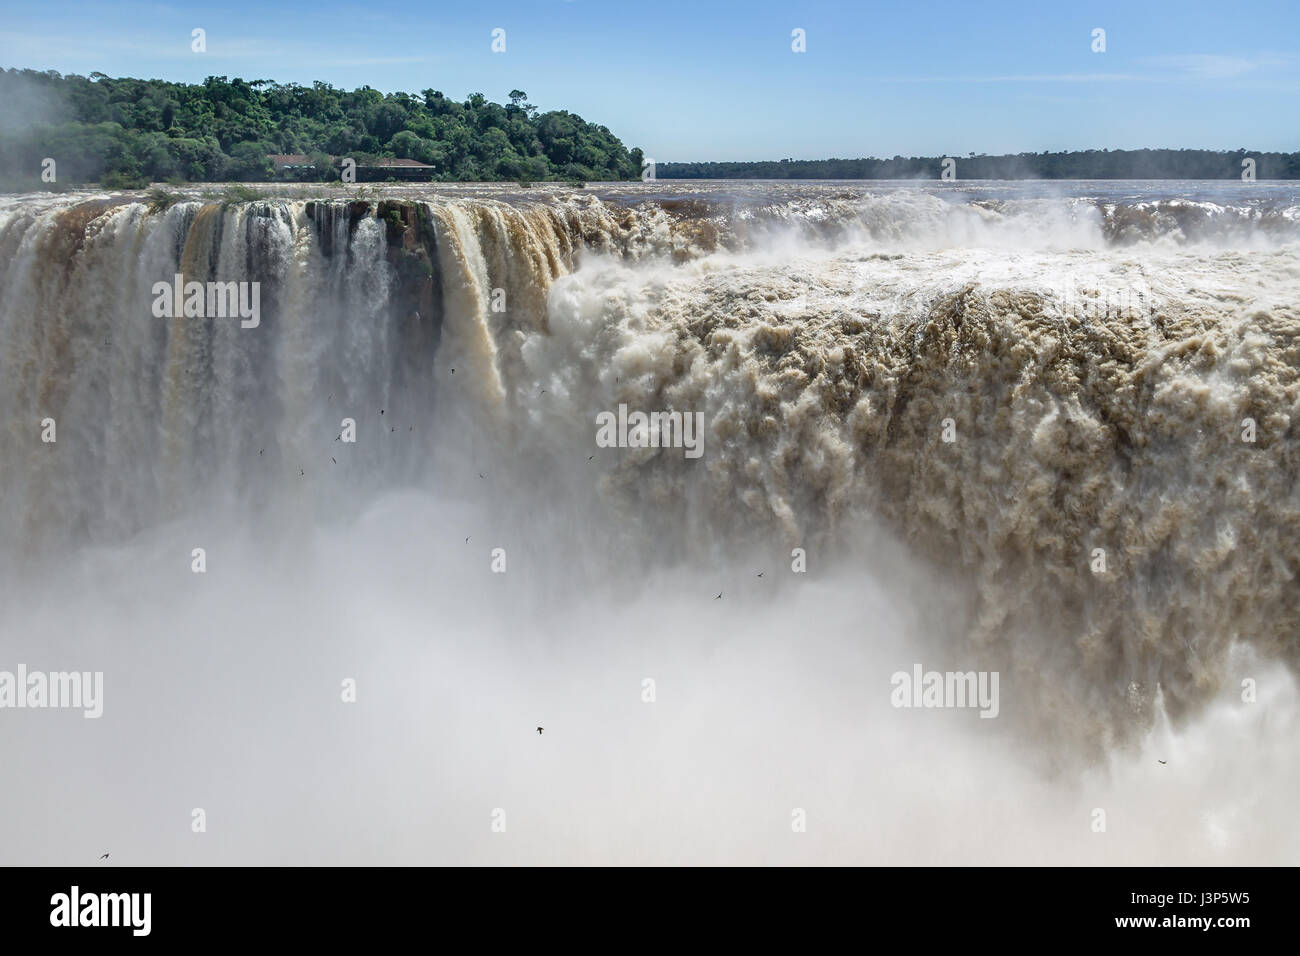 The Devils Throat at Iguazu Falls view from argentinian side - Brazil and Argentina Border - Stock Image